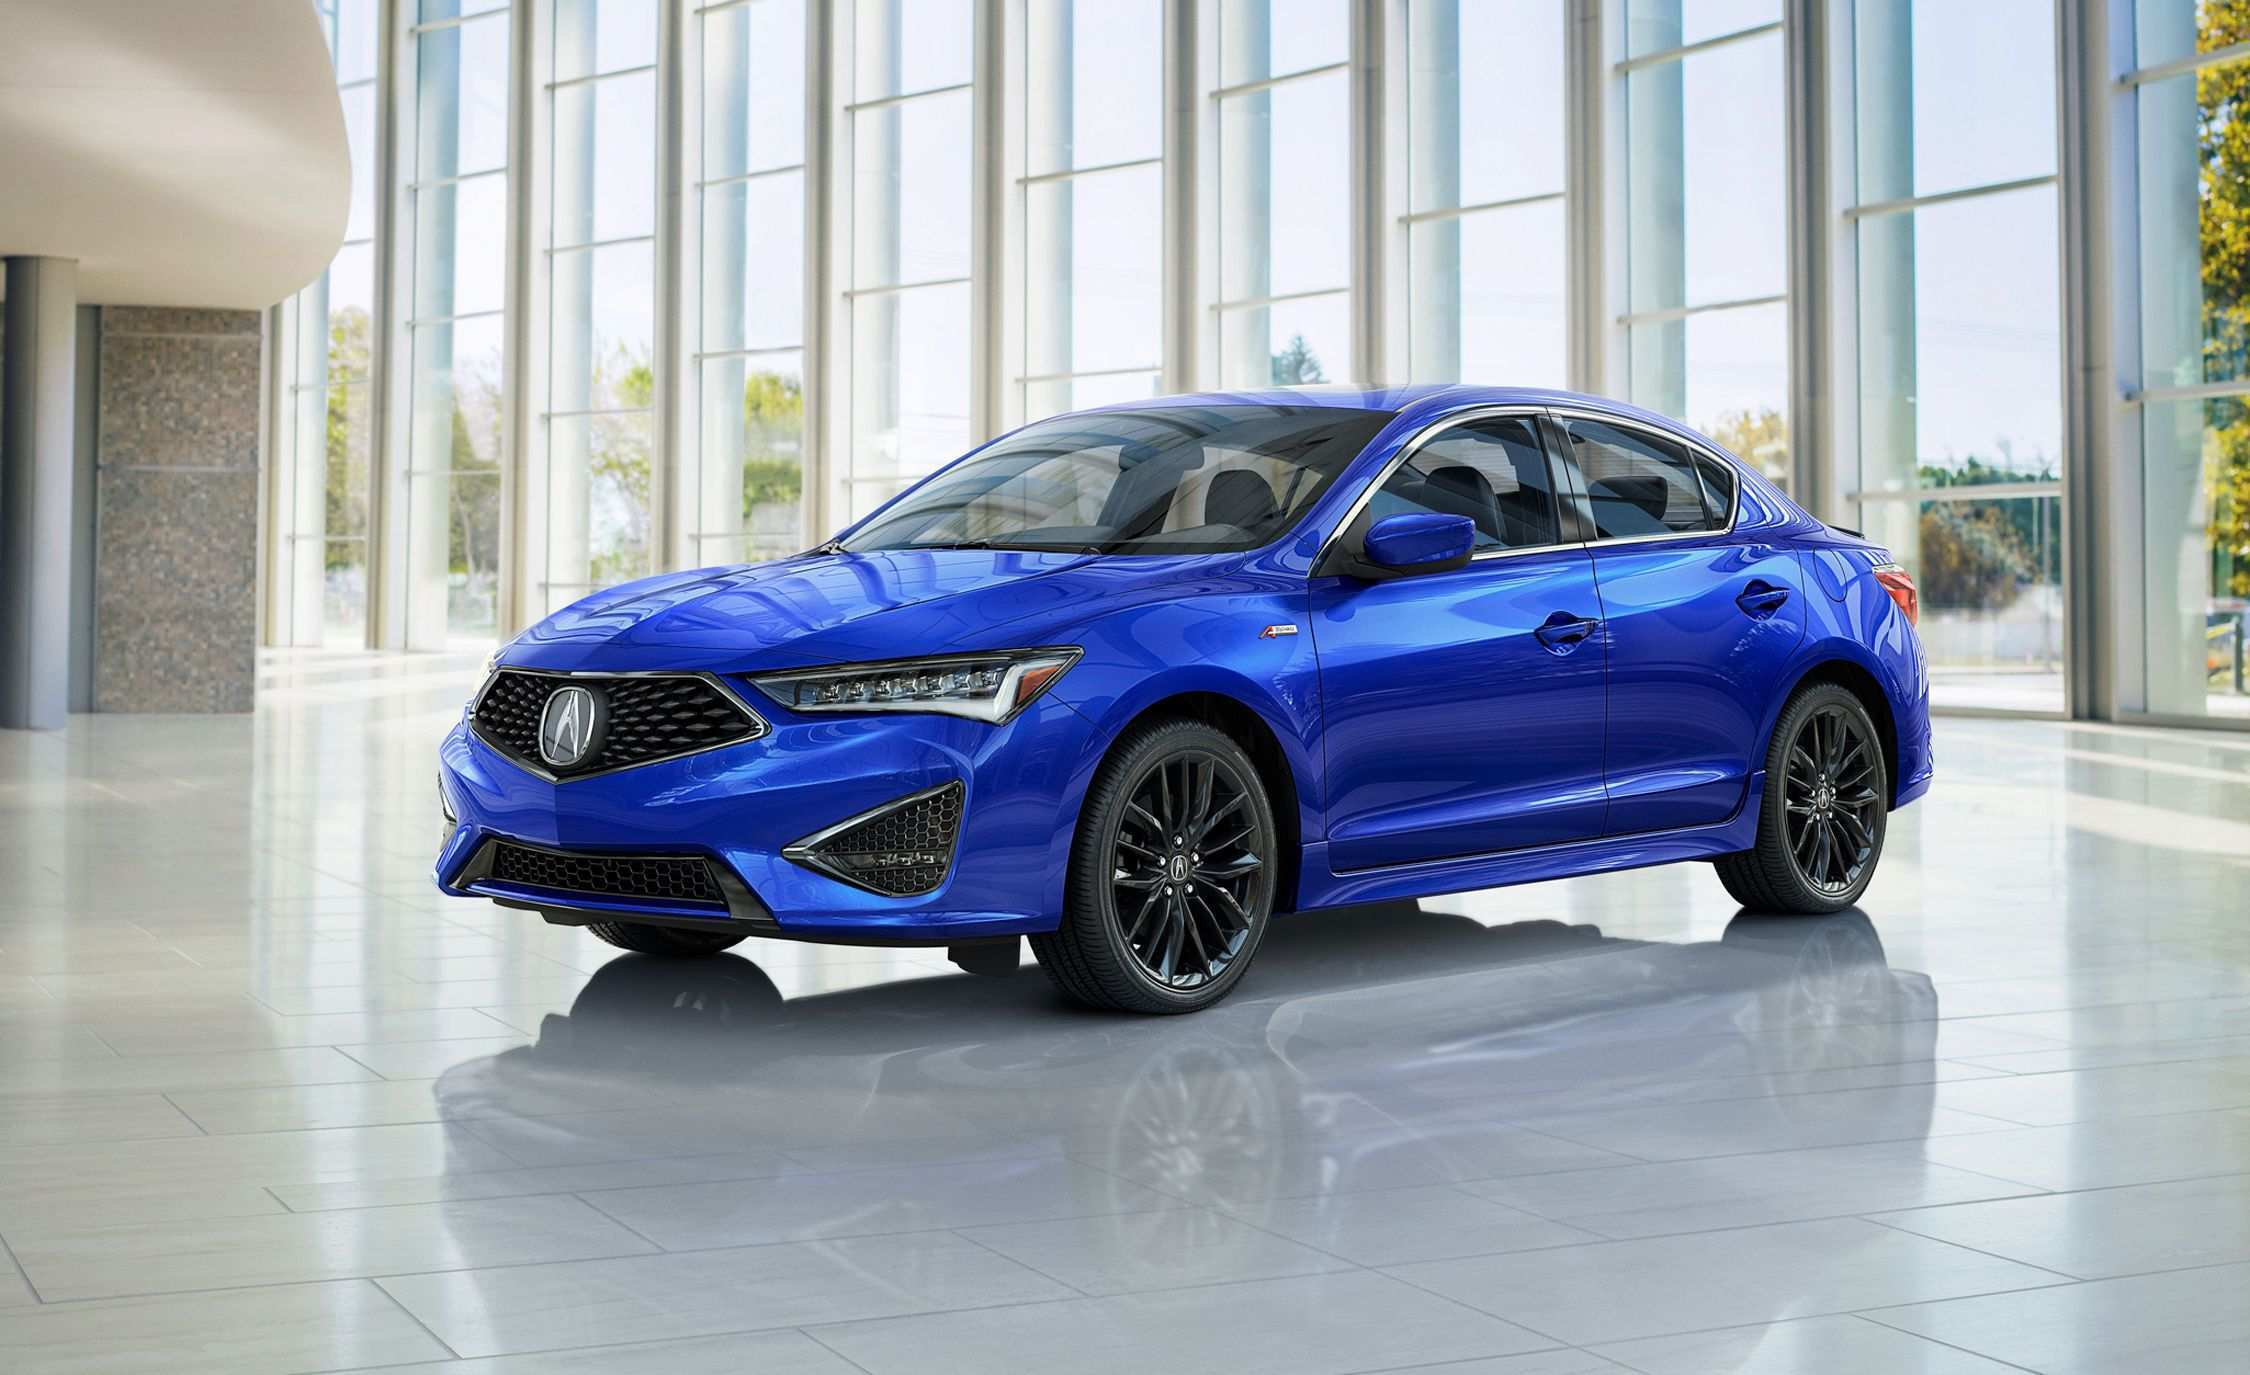 30 Concept of 2019 Acura Usa Specs with 2019 Acura Usa